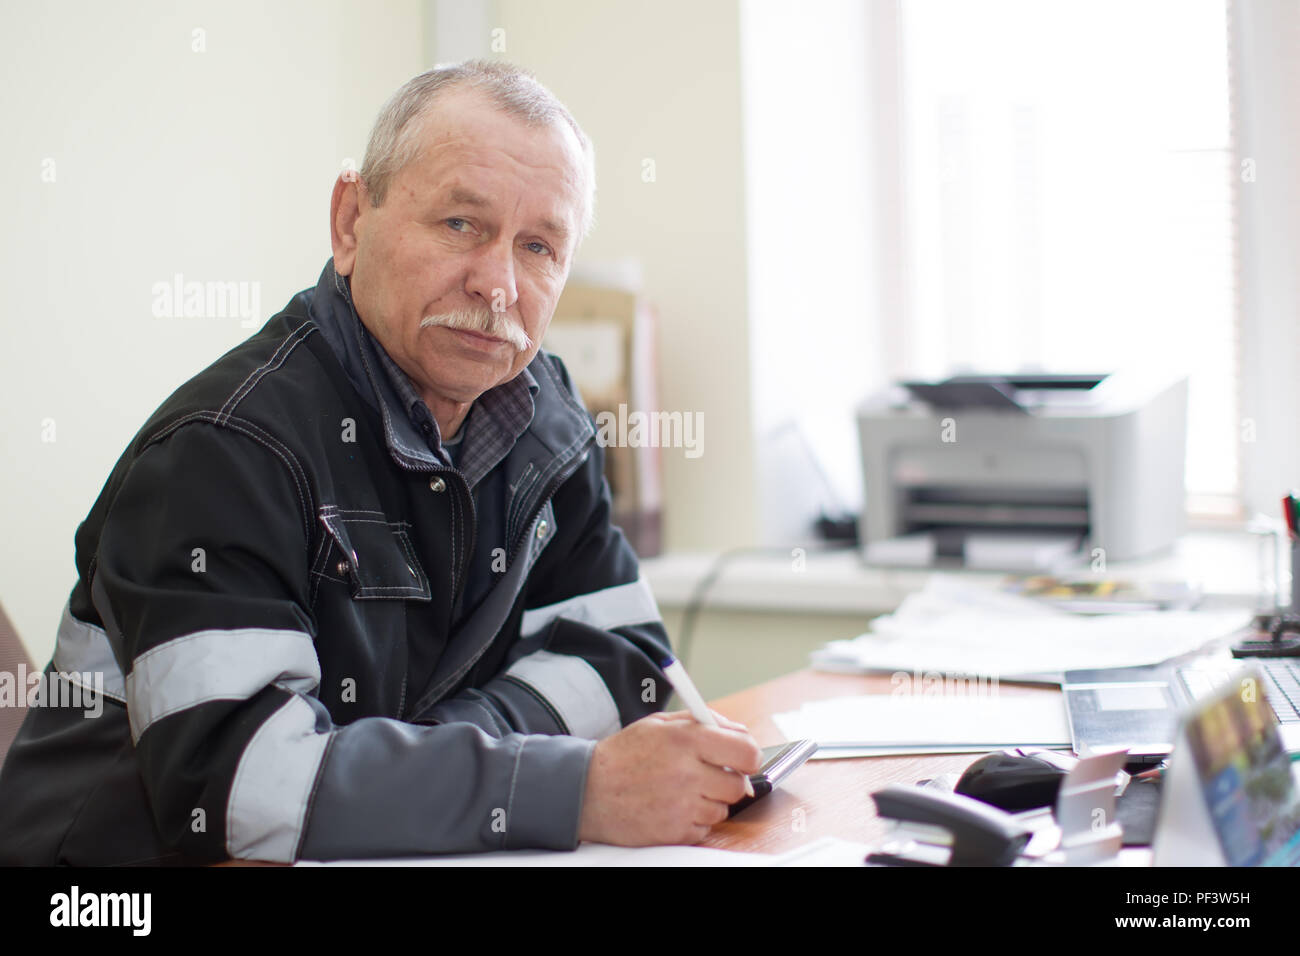 Belarus, Gomel, April 24, 2018. Reception point. Elderly employee at a table in the office.Foreman commander - Stock Image